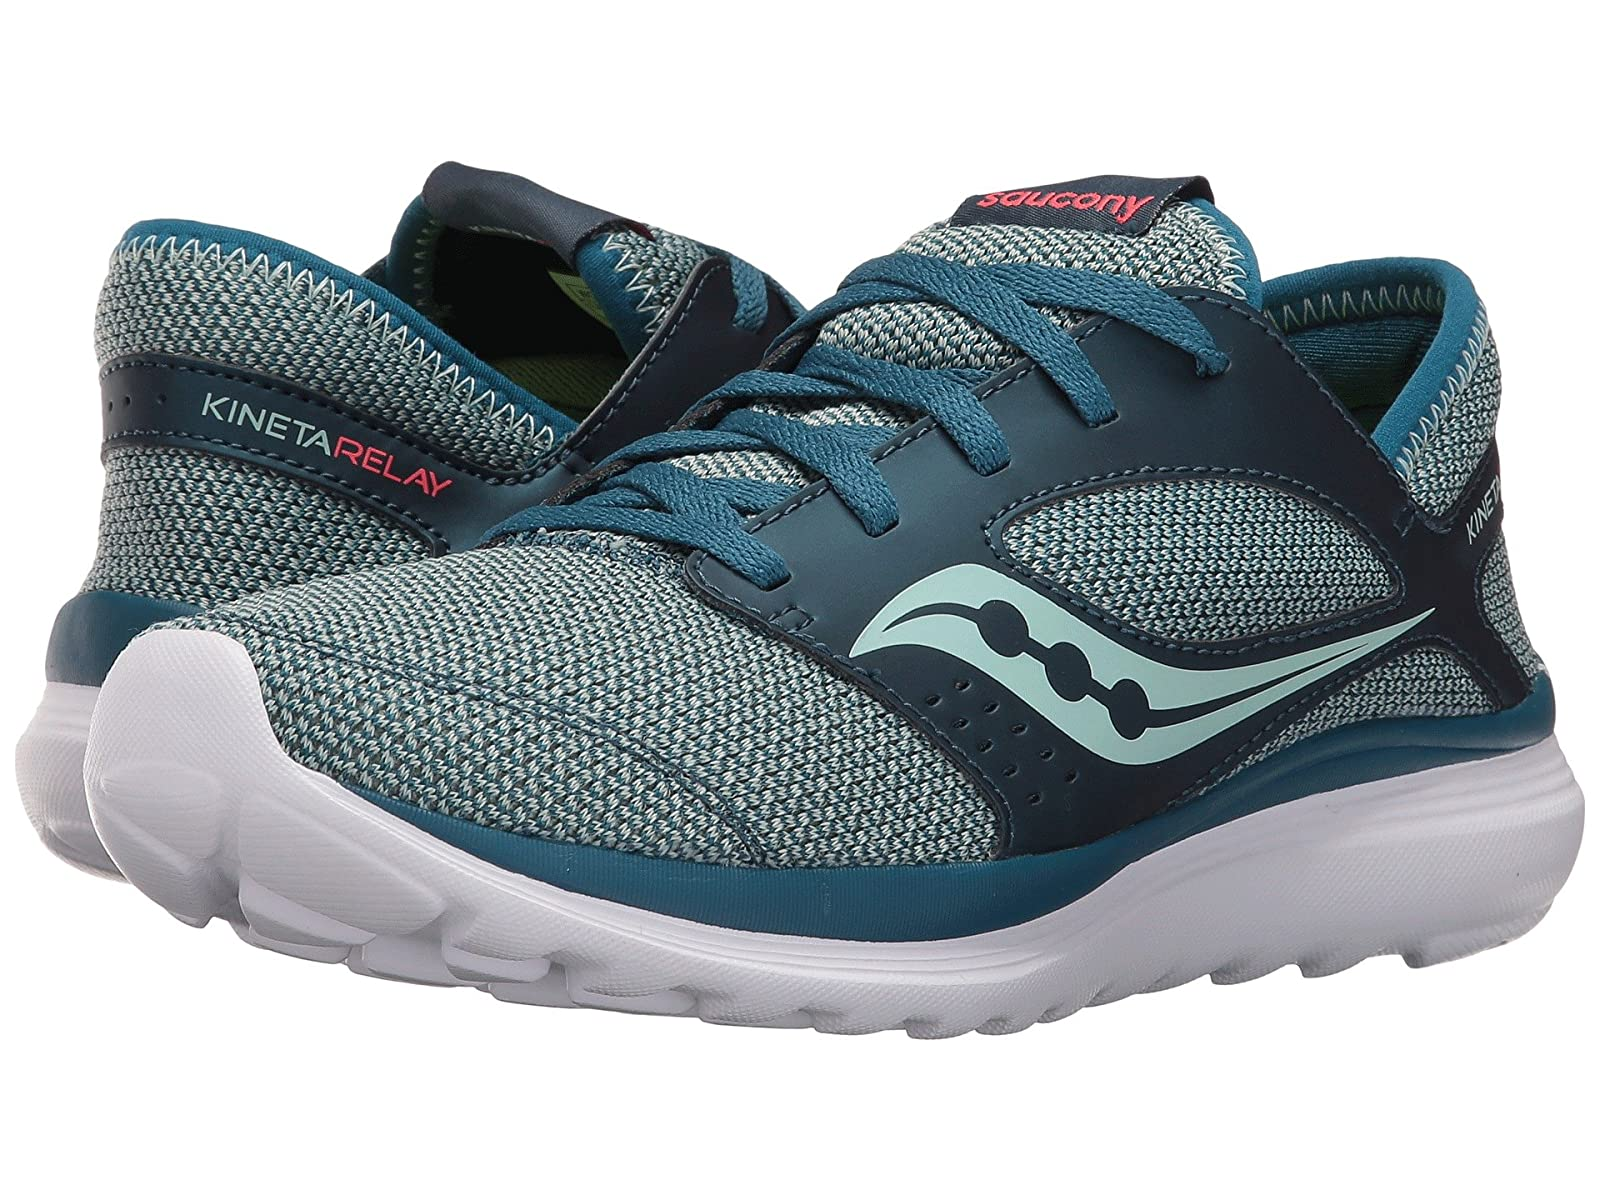 Saucony Kineta RelayCheap and distinctive eye-catching shoes